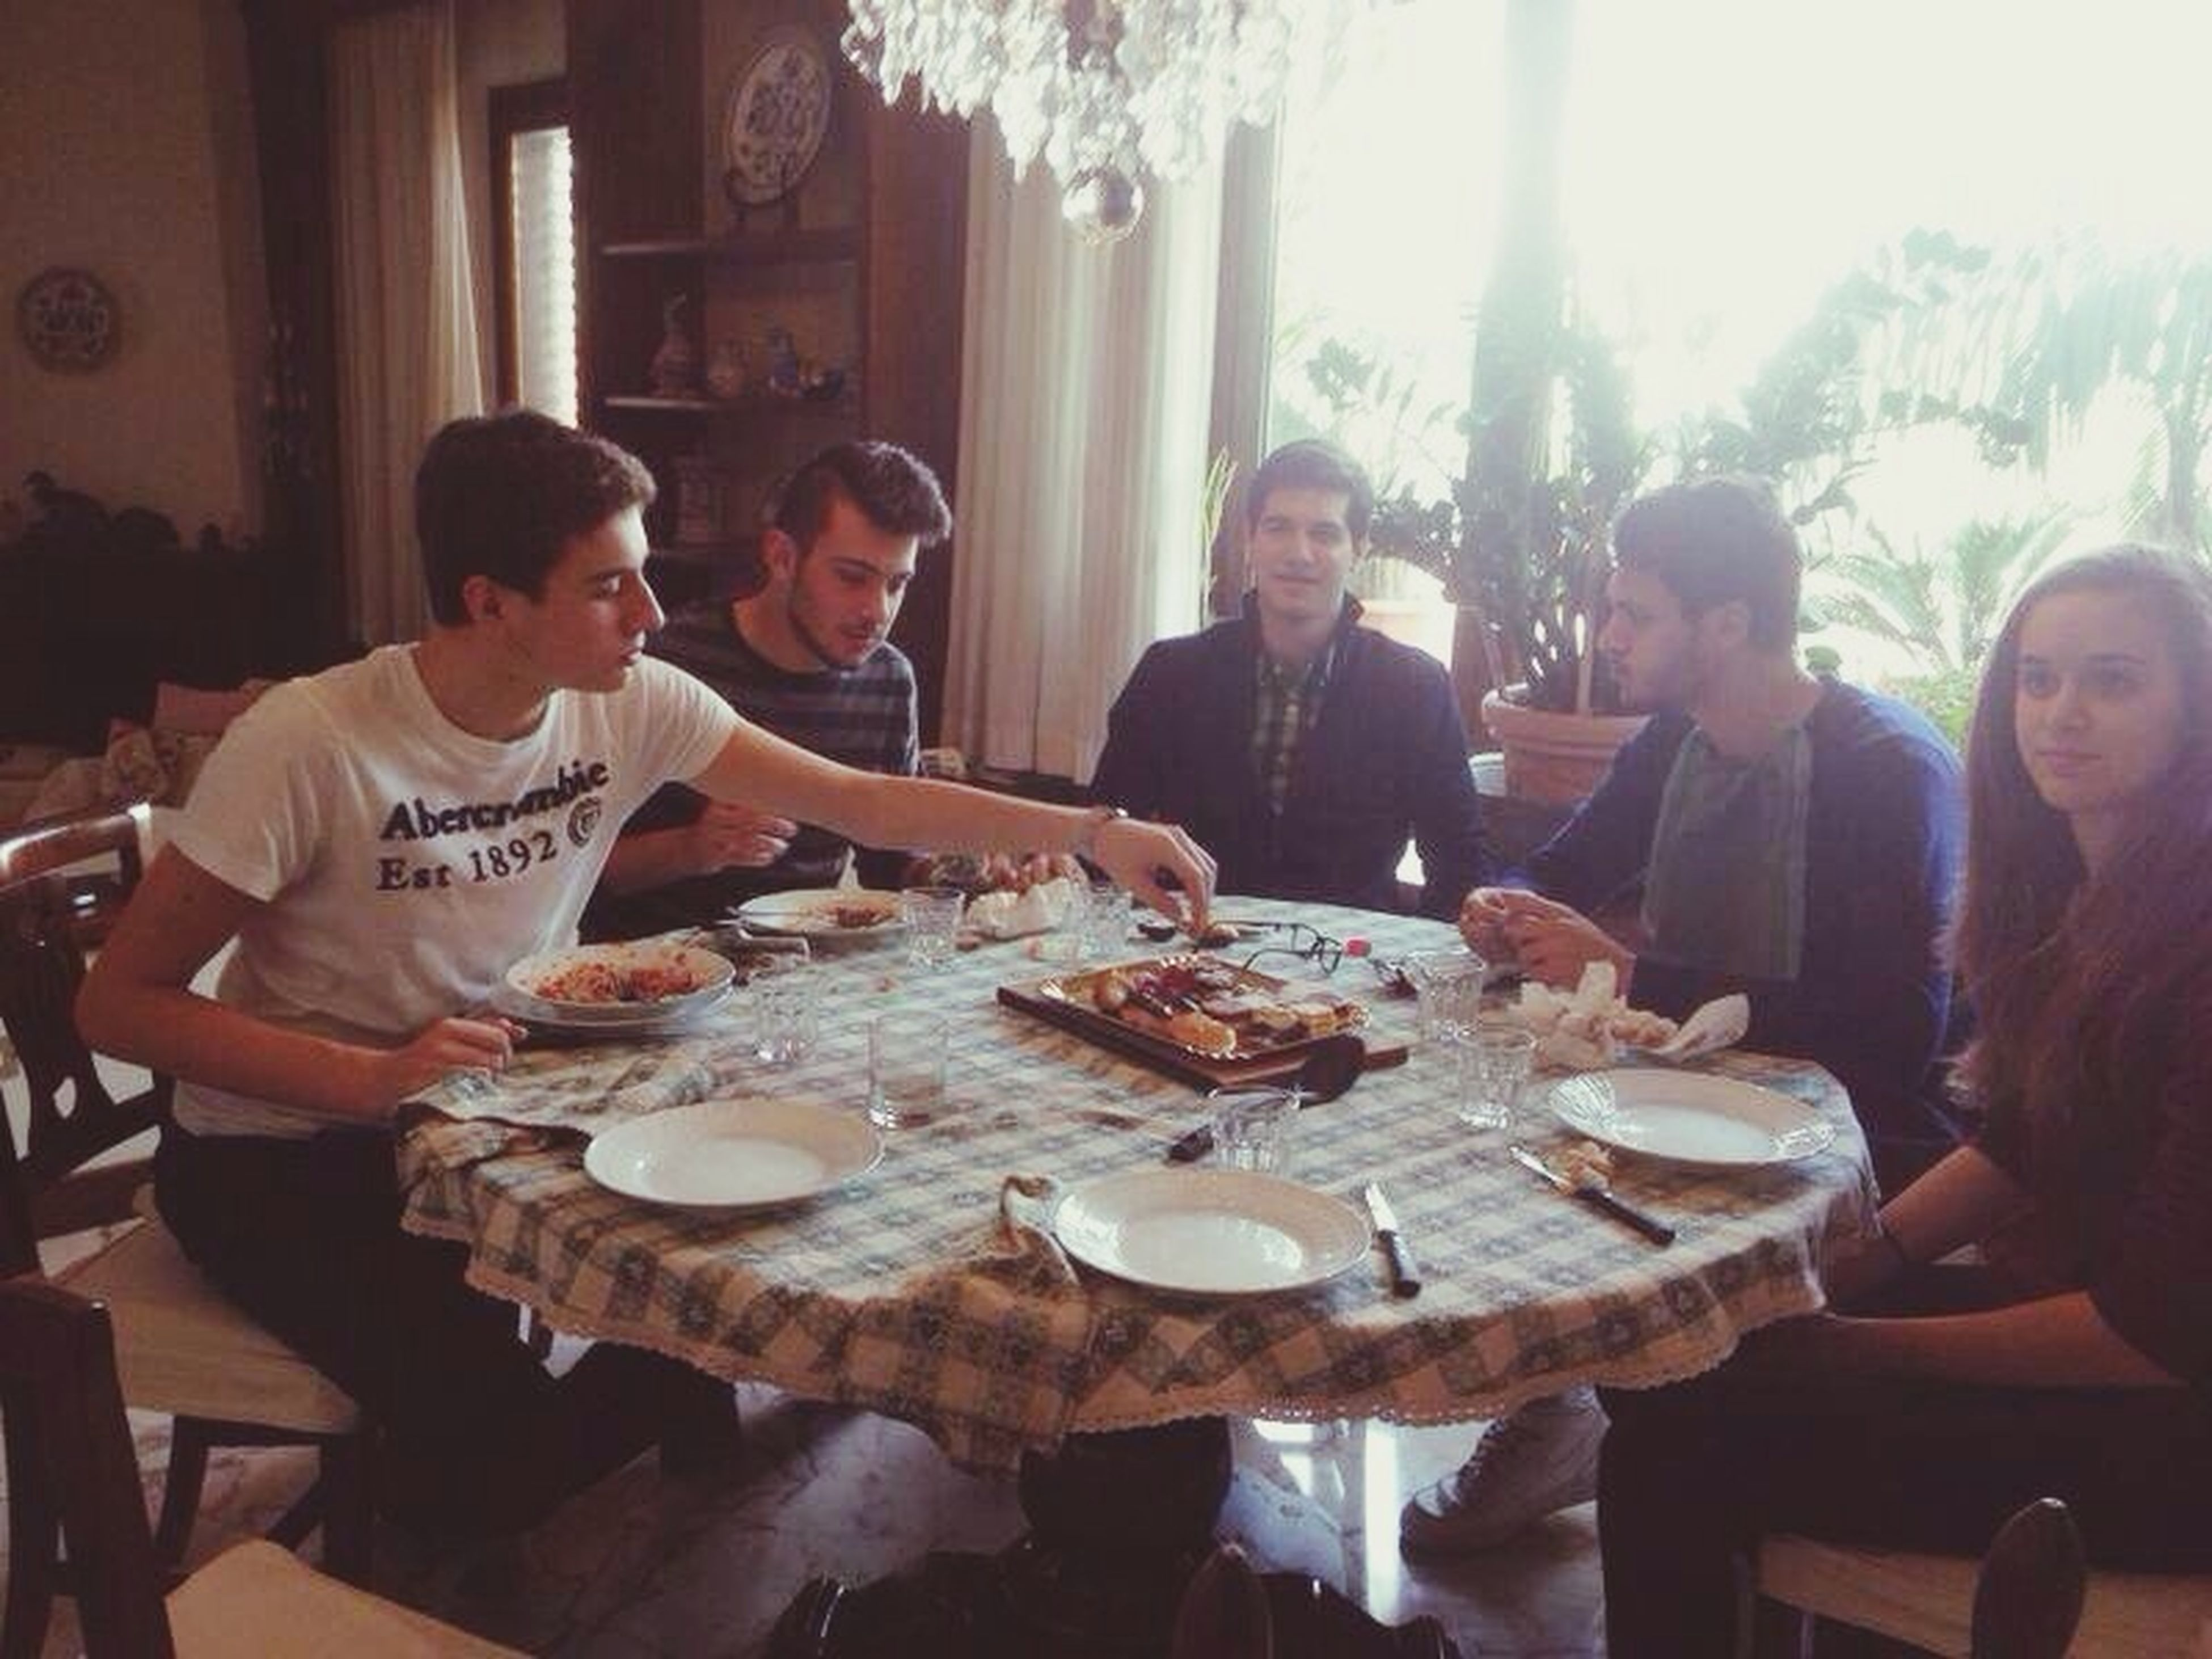 food and drink, indoors, lifestyles, food, leisure activity, table, freshness, togetherness, restaurant, men, sitting, plate, friendship, casual clothing, holding, young men, healthy eating